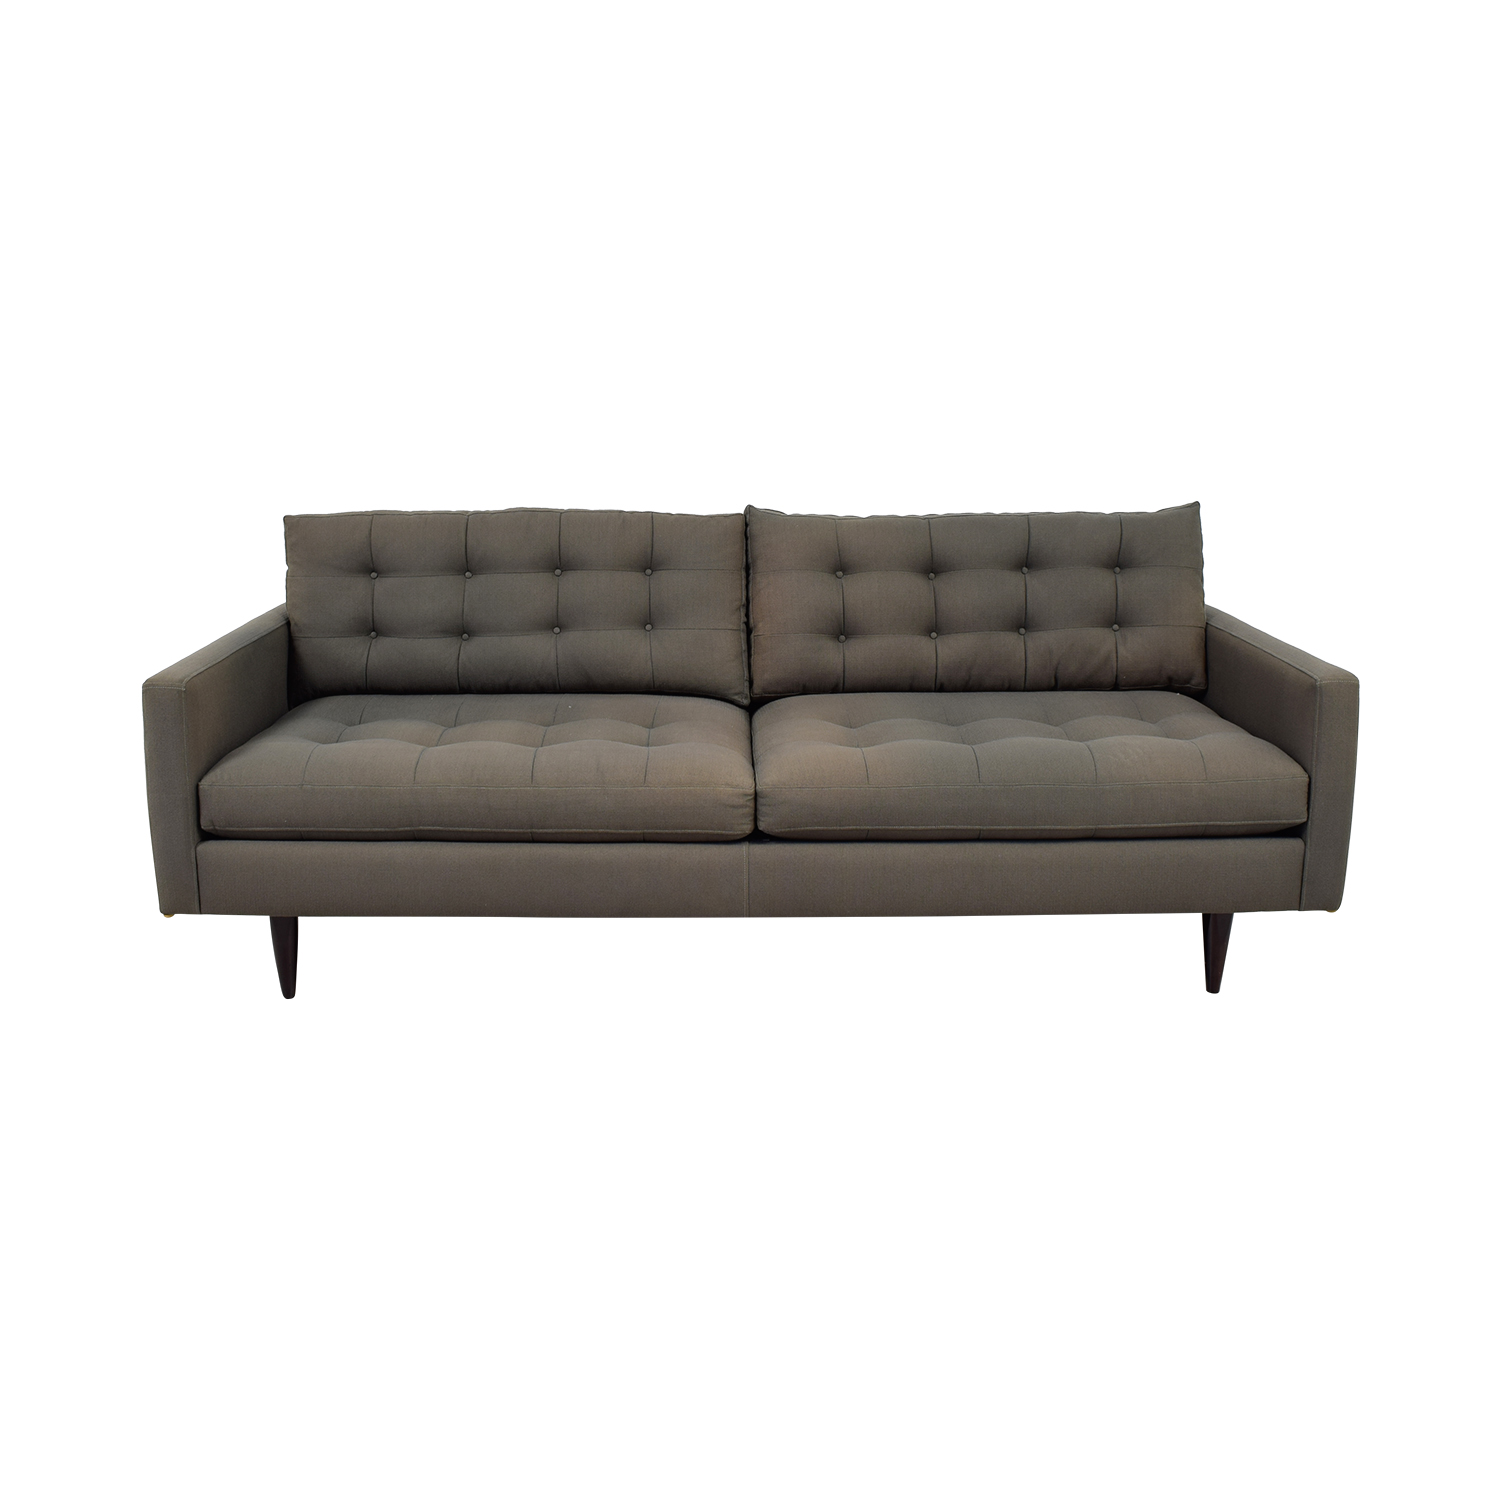 Crate & Barrel Crate & Barrel Petrie Grey Tufted Two-Cushion Sofa